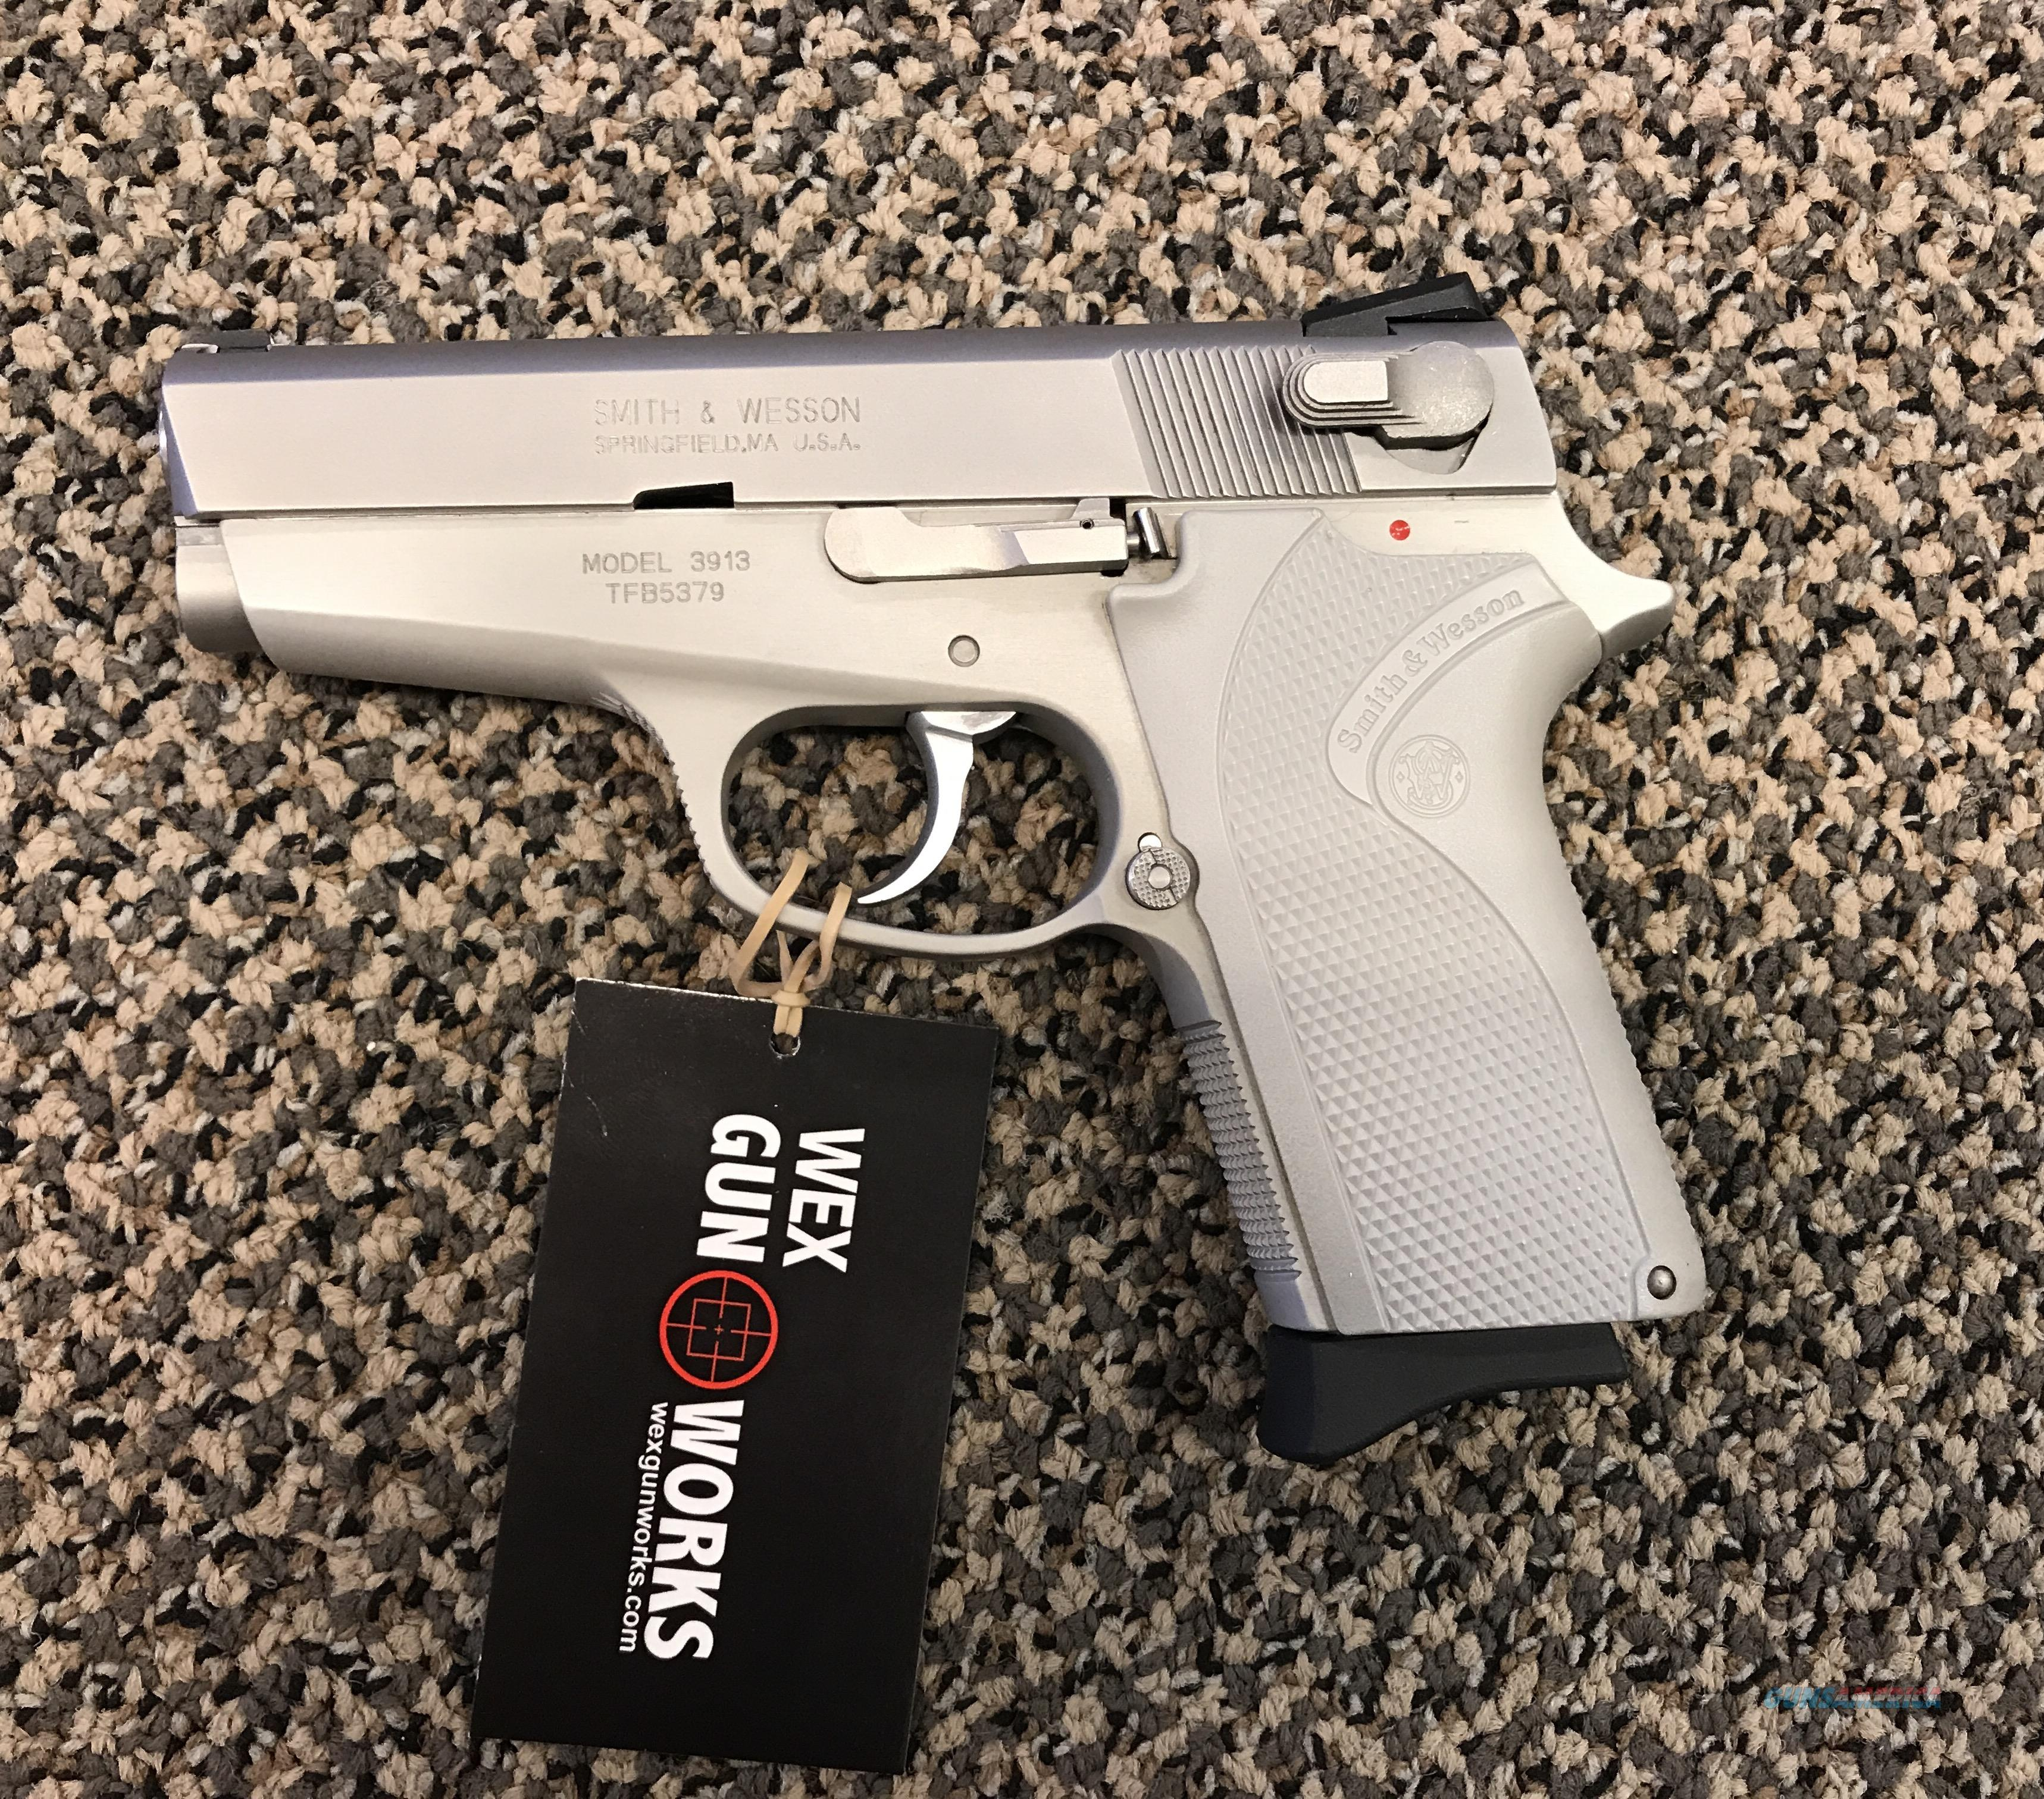 S&W 3913 LADYSMITH 9MM BRUSHED STAINLESS MINT  Guns > Pistols > Smith & Wesson Pistols - Autos > Steel Frame